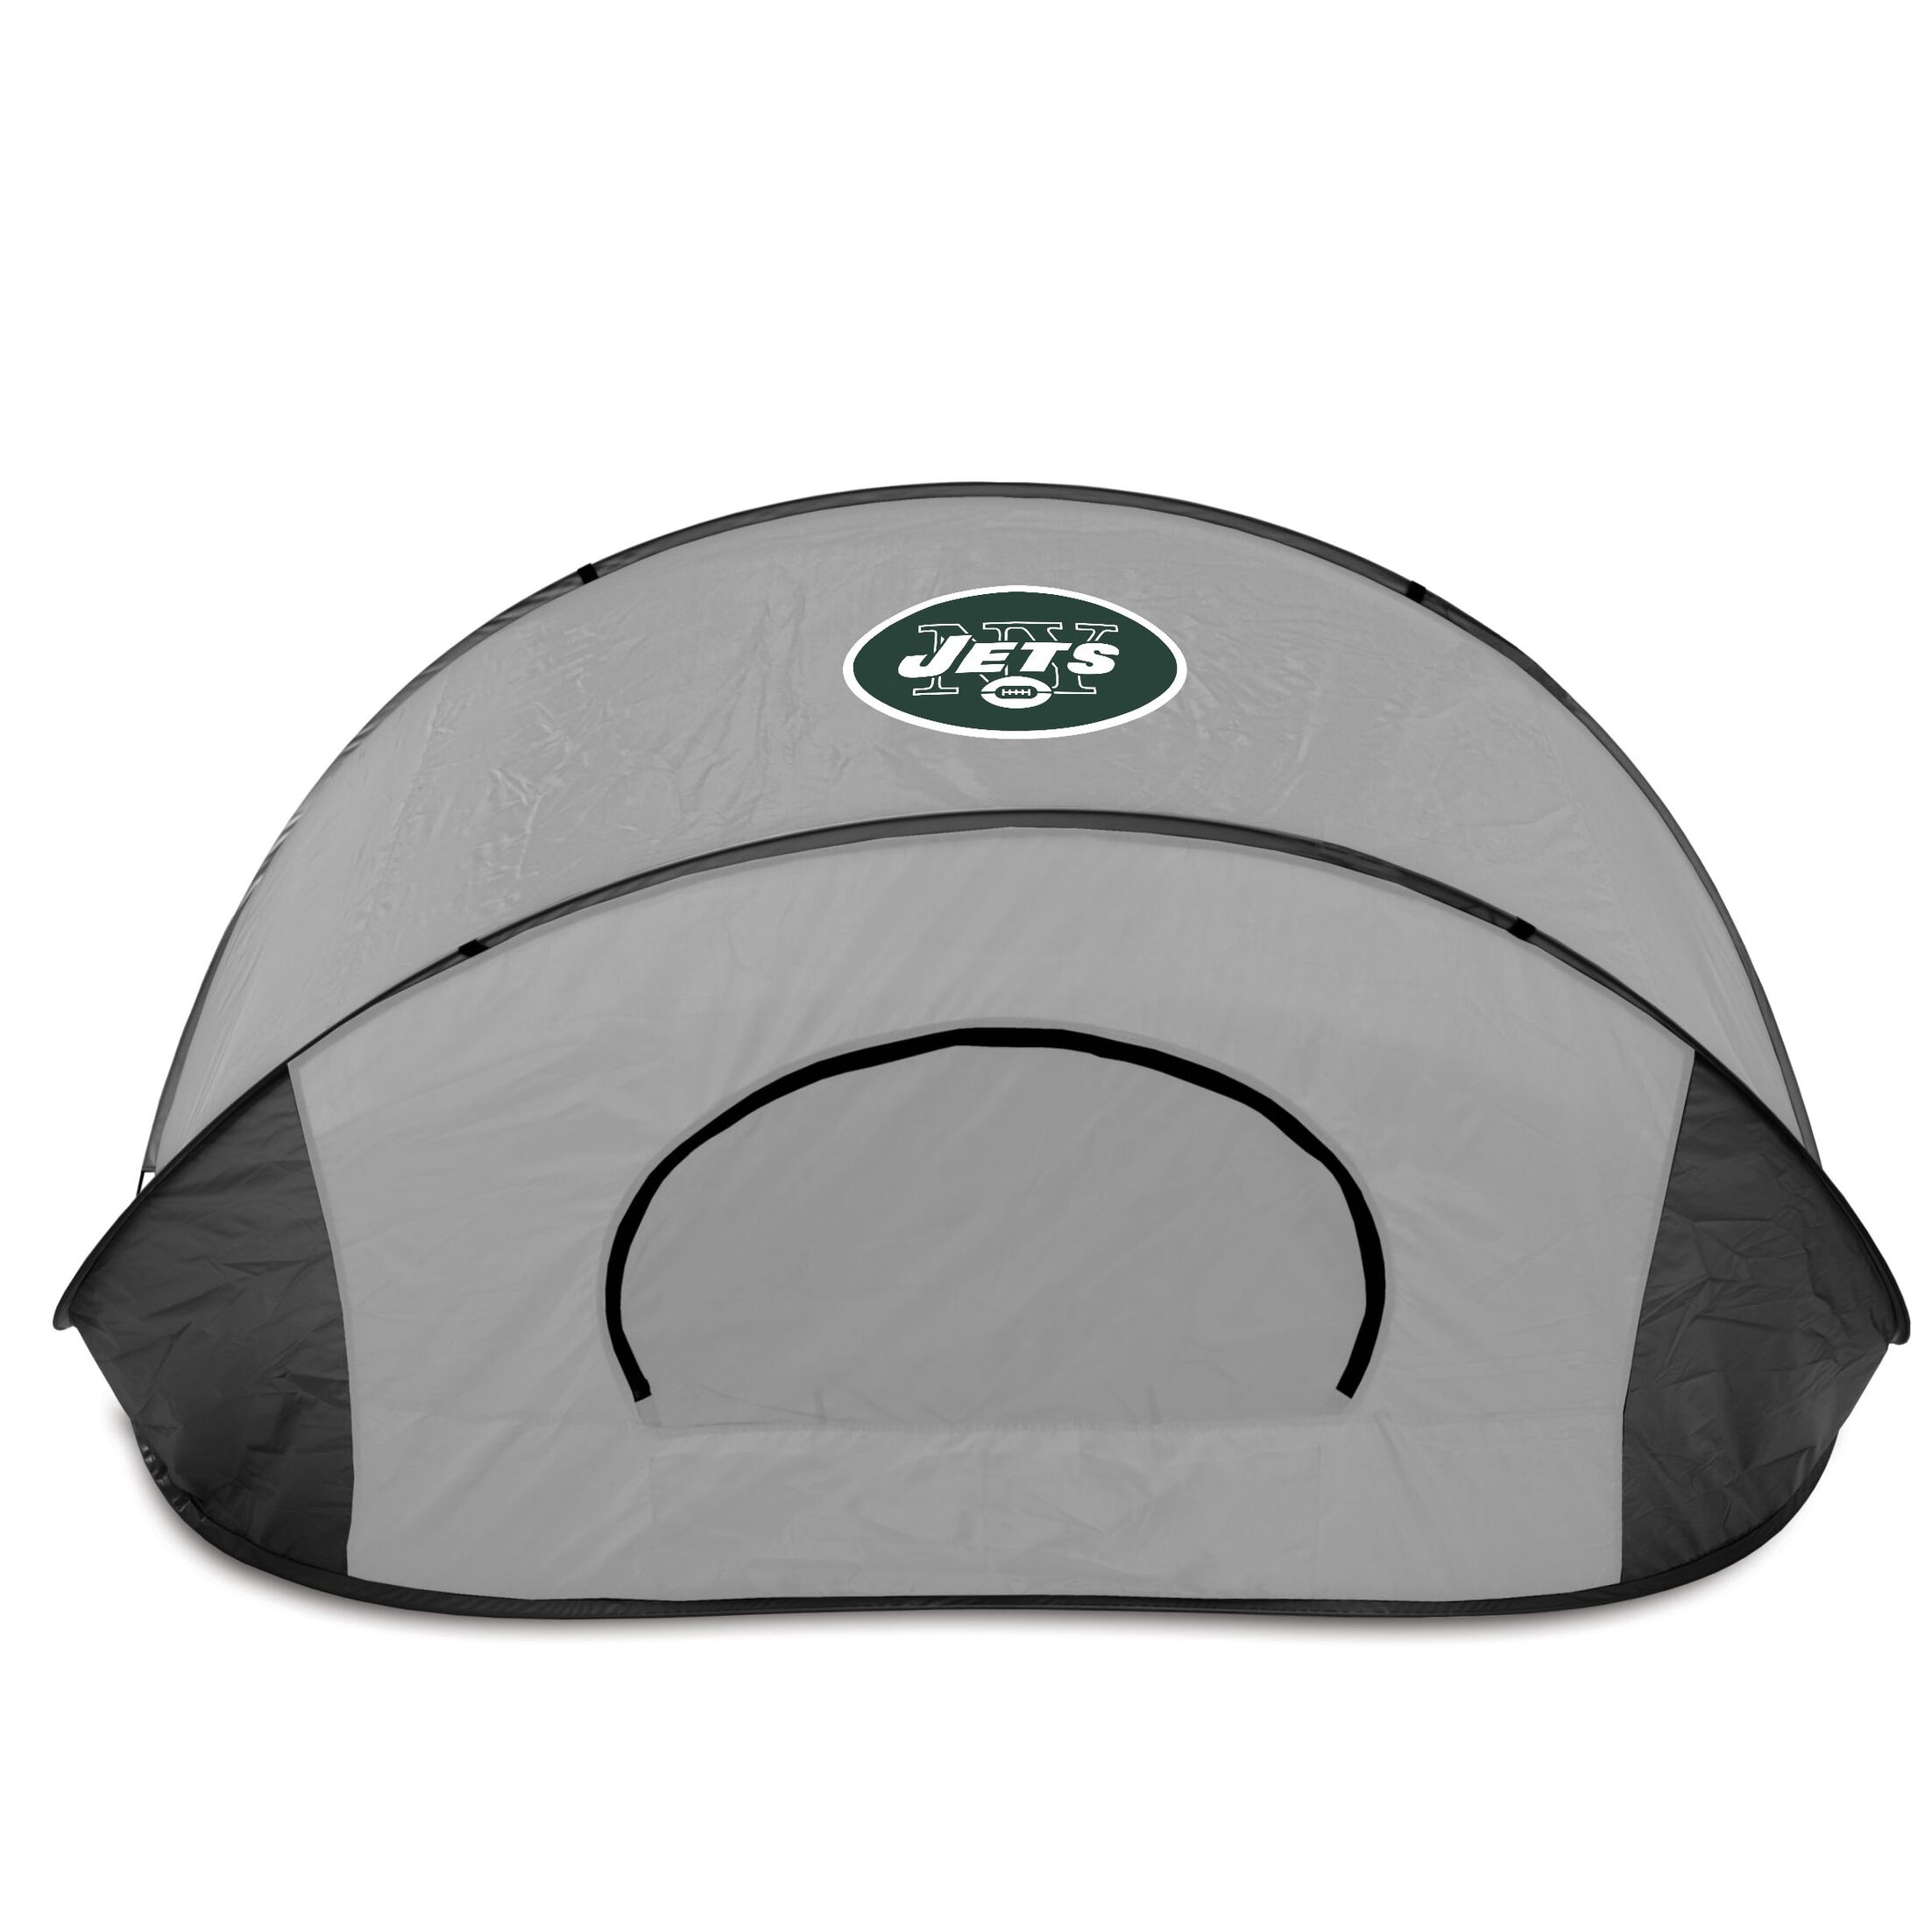 NFL Manta Shelter Color: Black / Grey, NFL Team: New York Jets